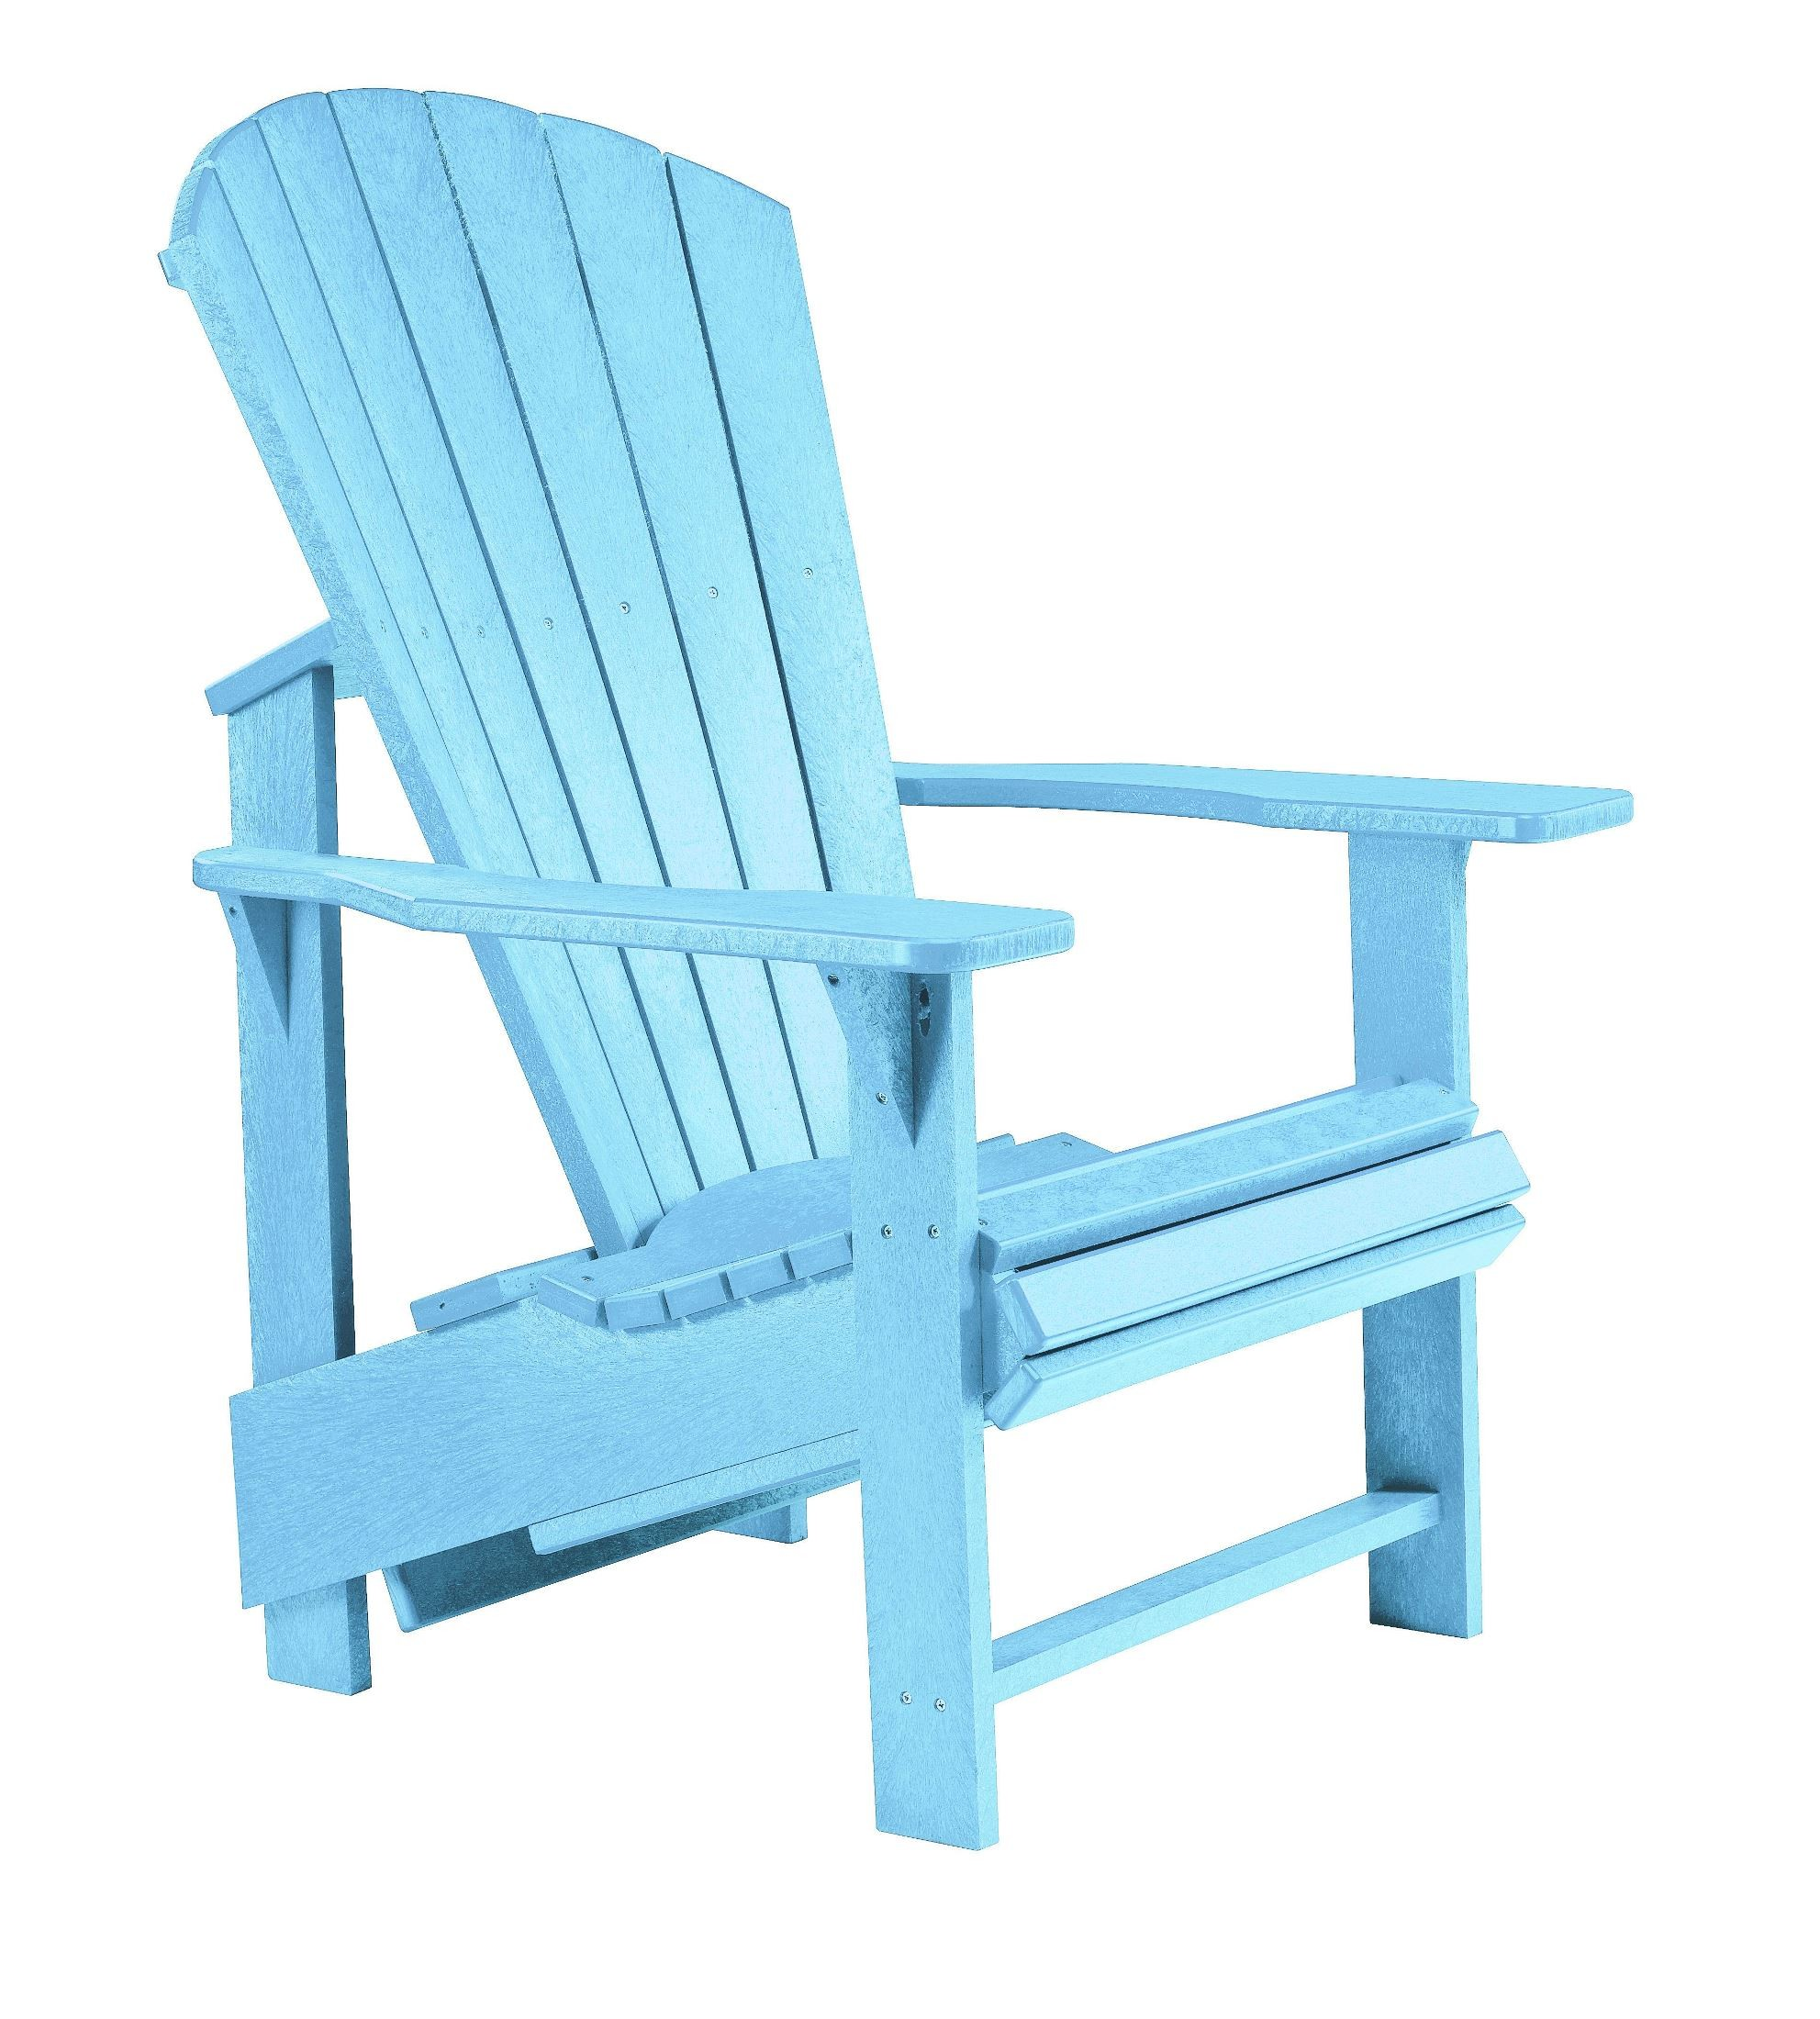 Generations Aqua Upright Adirondack Chair from CR Plastic